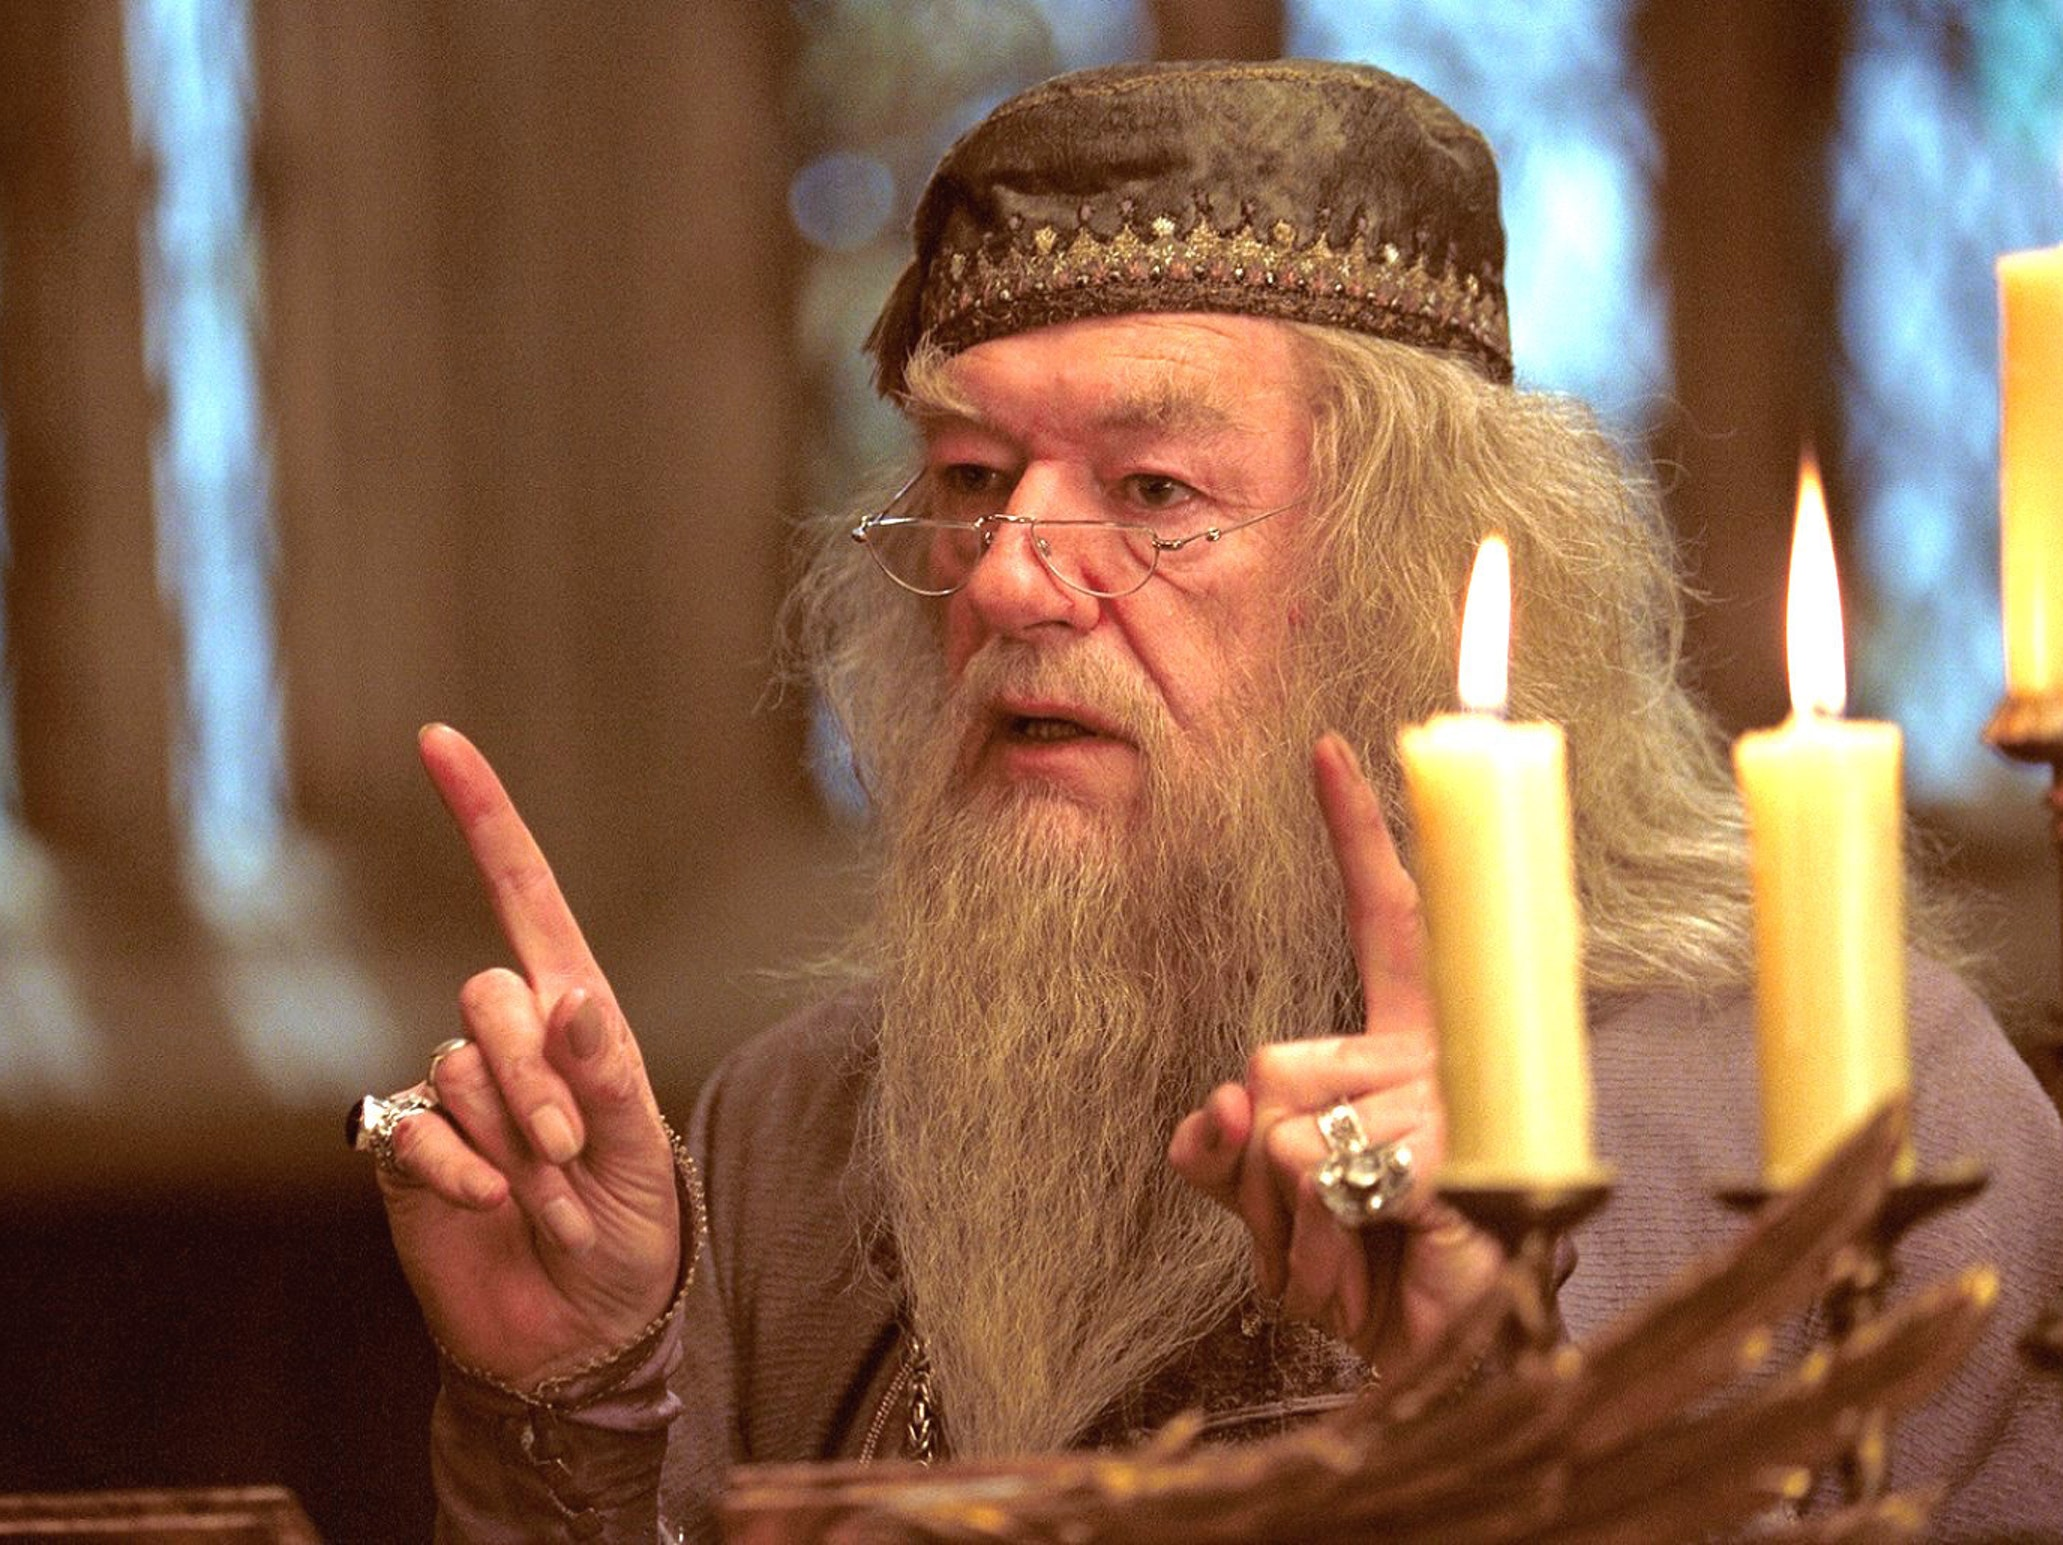 did Dumbledore rig the Department of Mysteries battle in Harry Potter?